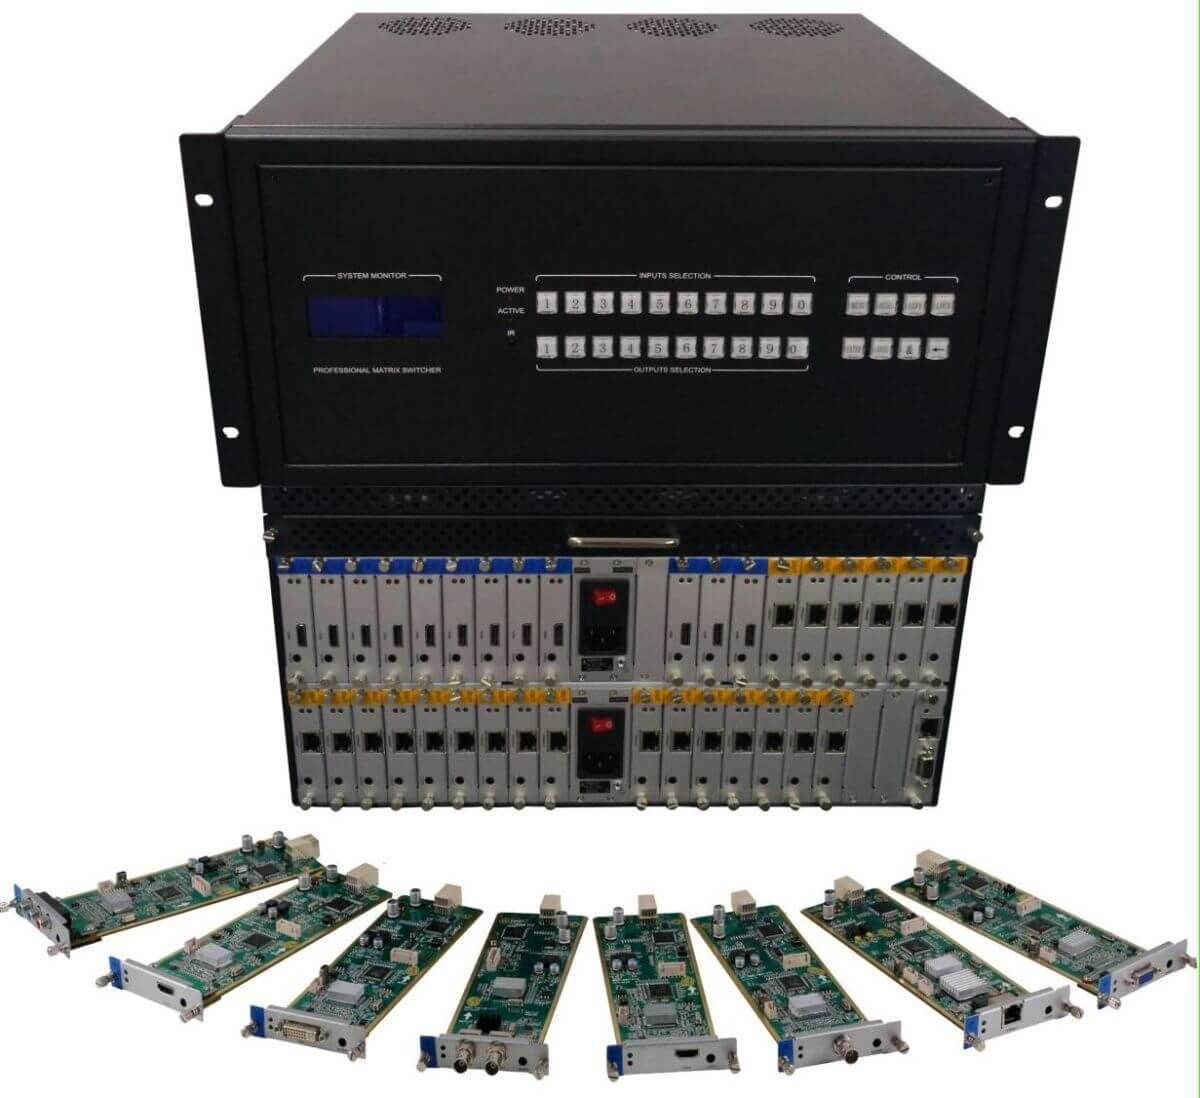 20x32 HDMI Matrix Switcher with Video Wall Processor